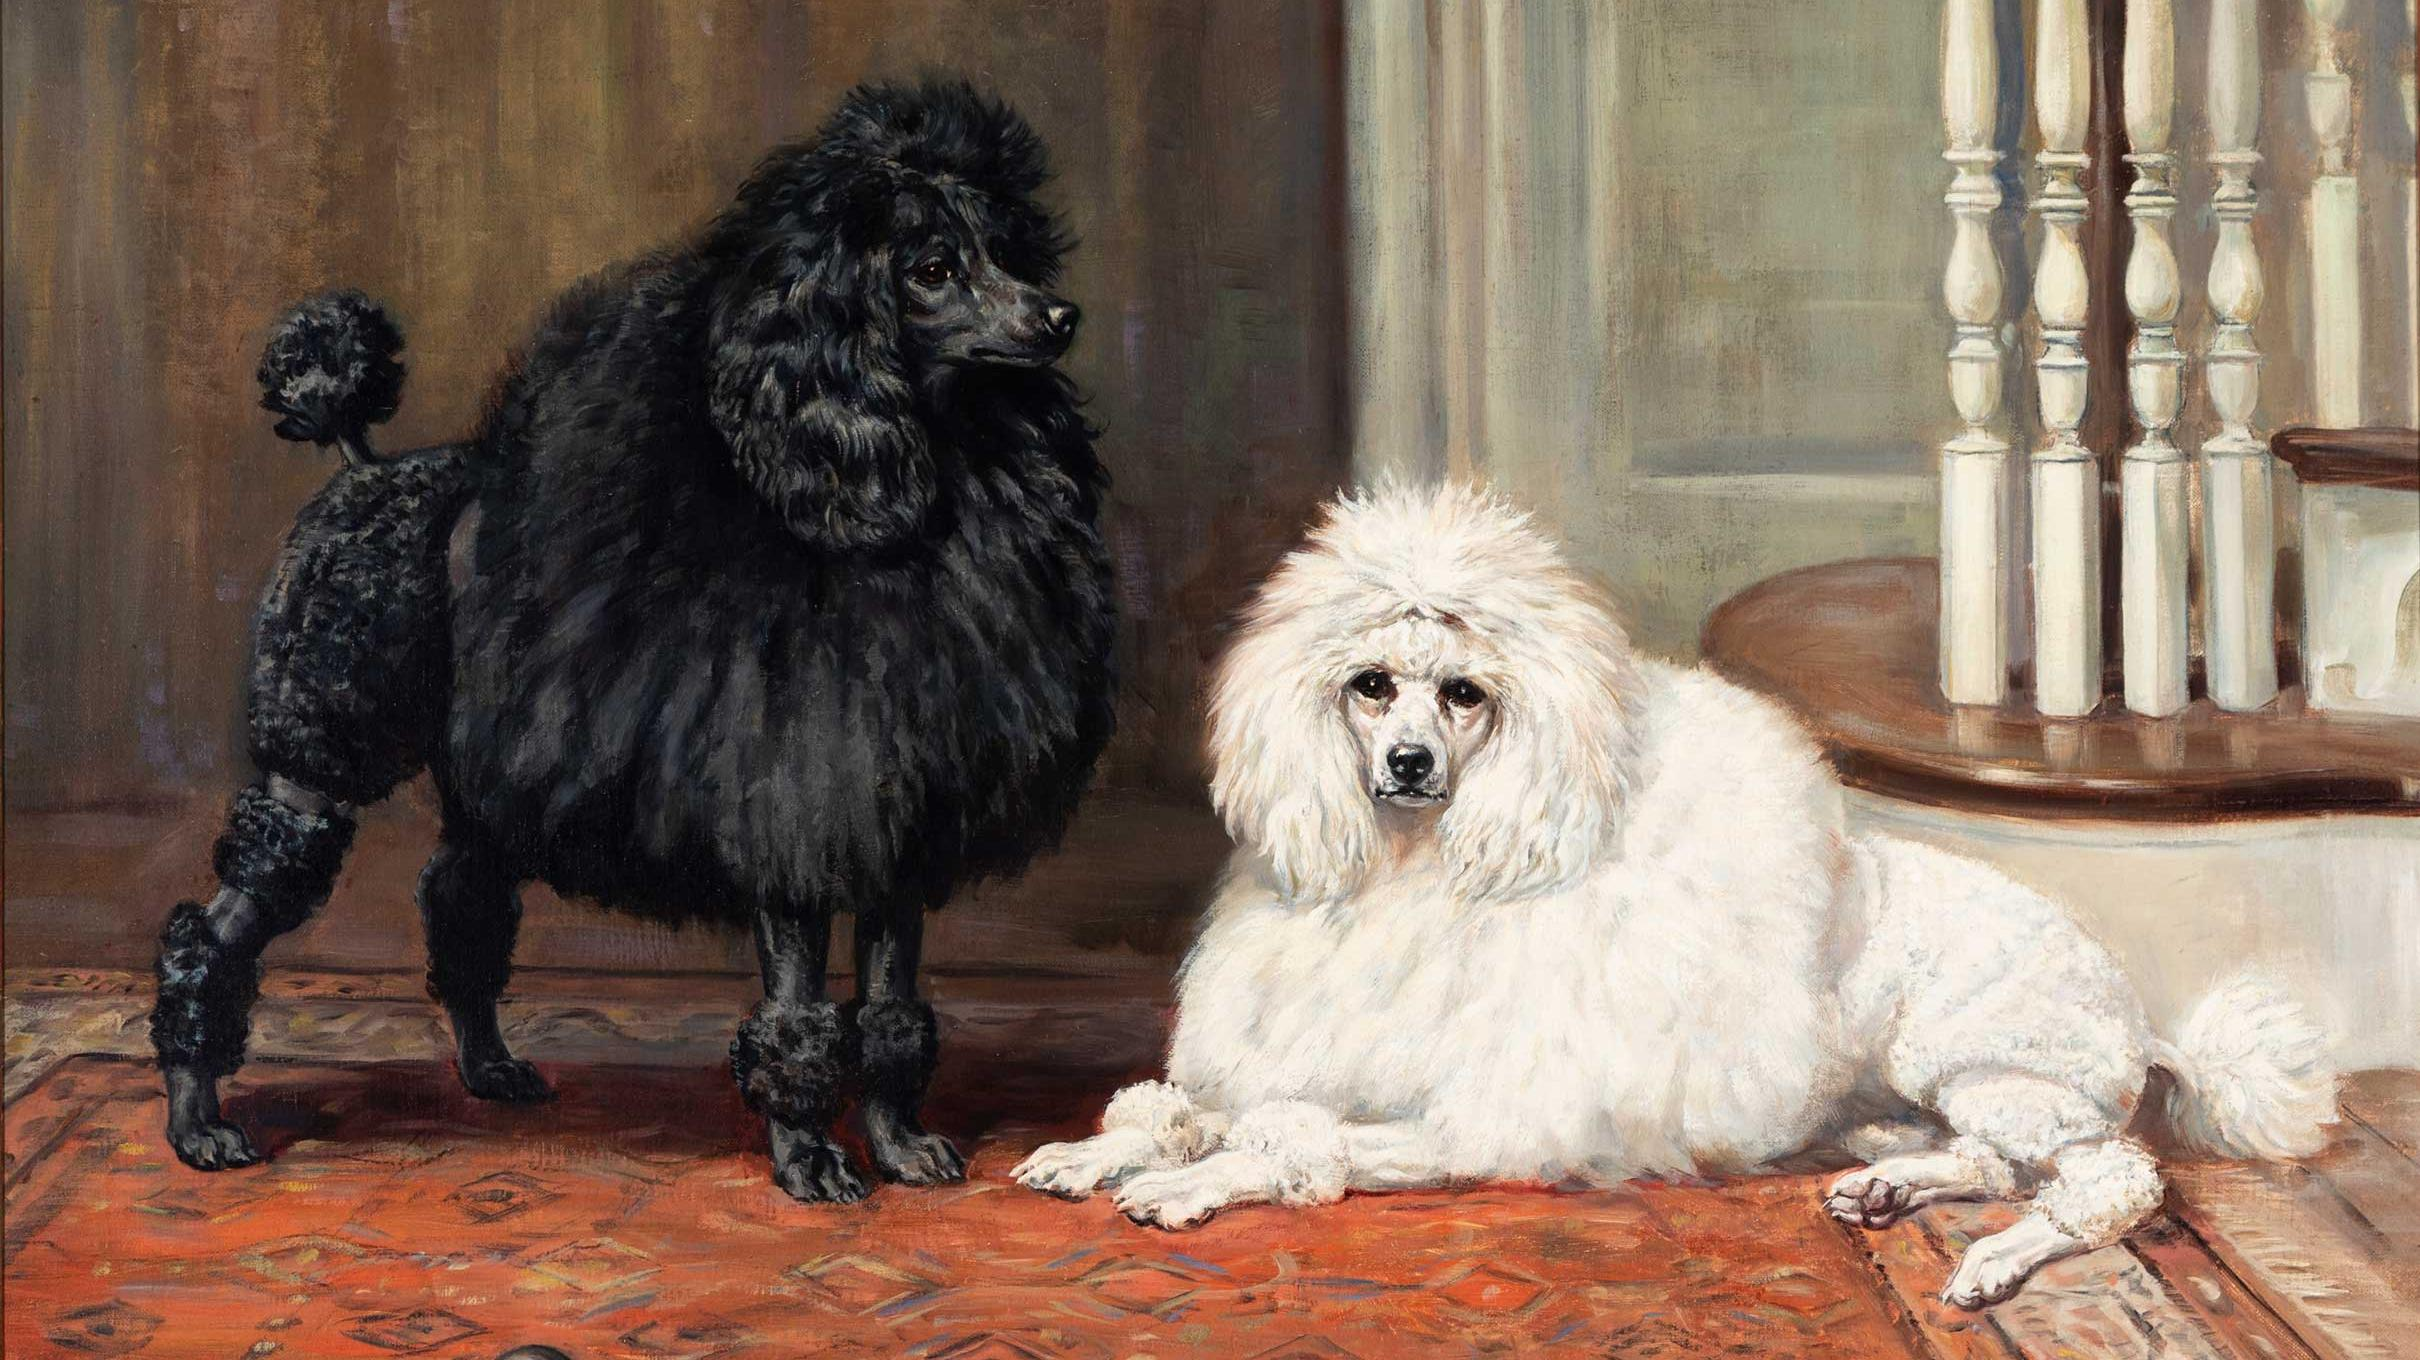 Best in show: inside New York's dog museum